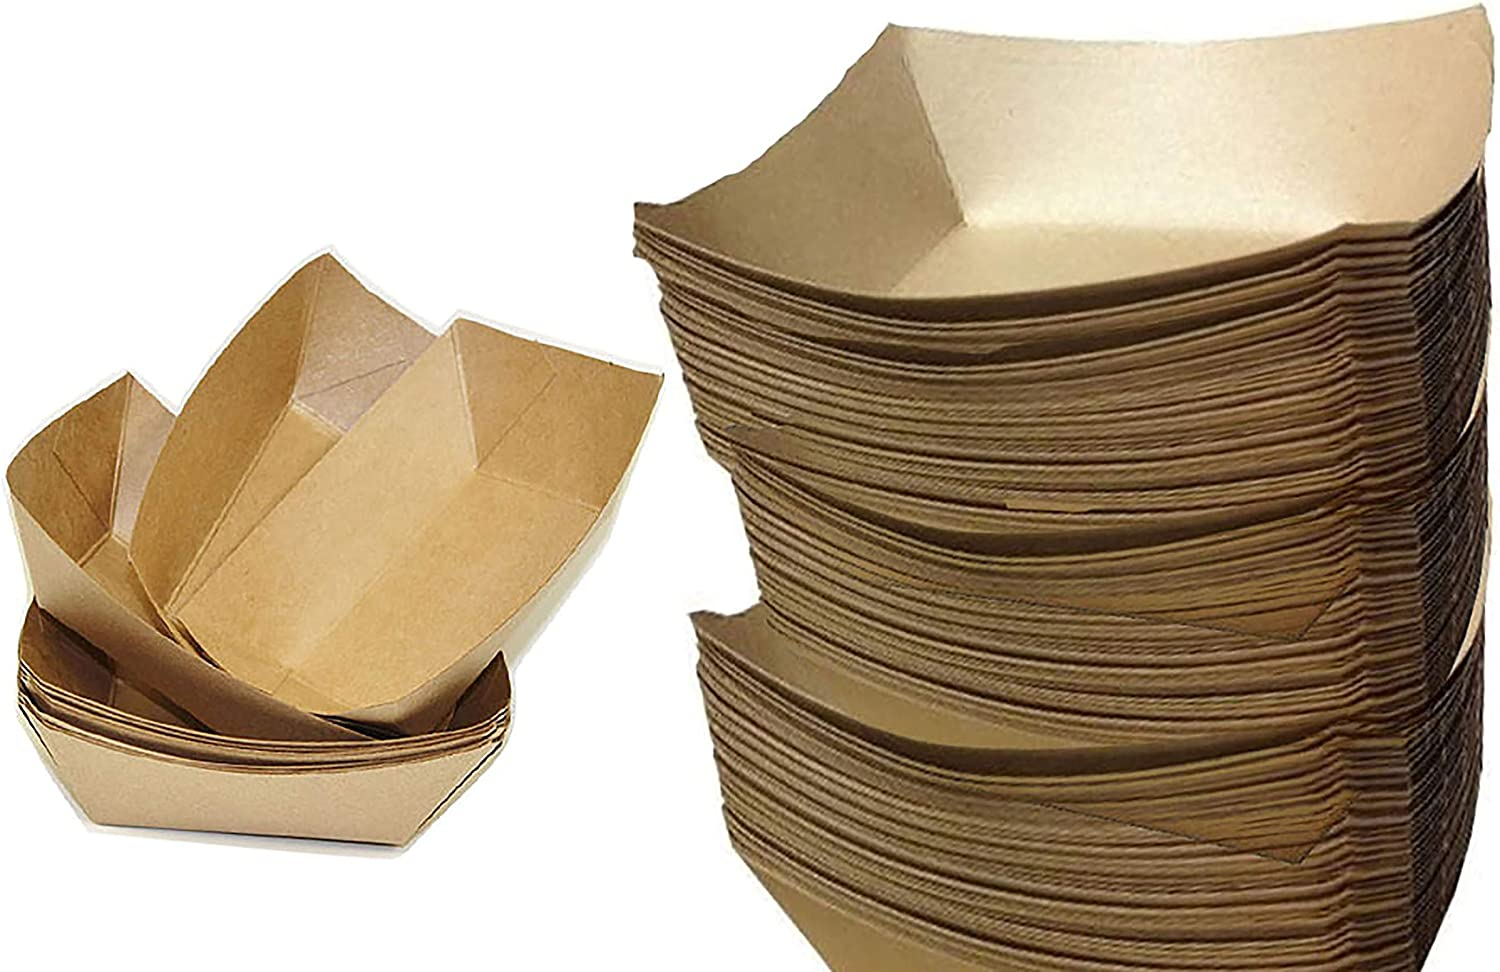 3 lb paper food trays Set of 100 Sturdy and Recyclable Brown Kraft Paper Food Trays Great for Parties, Takeout, Home Use, Outdoor (100, 5